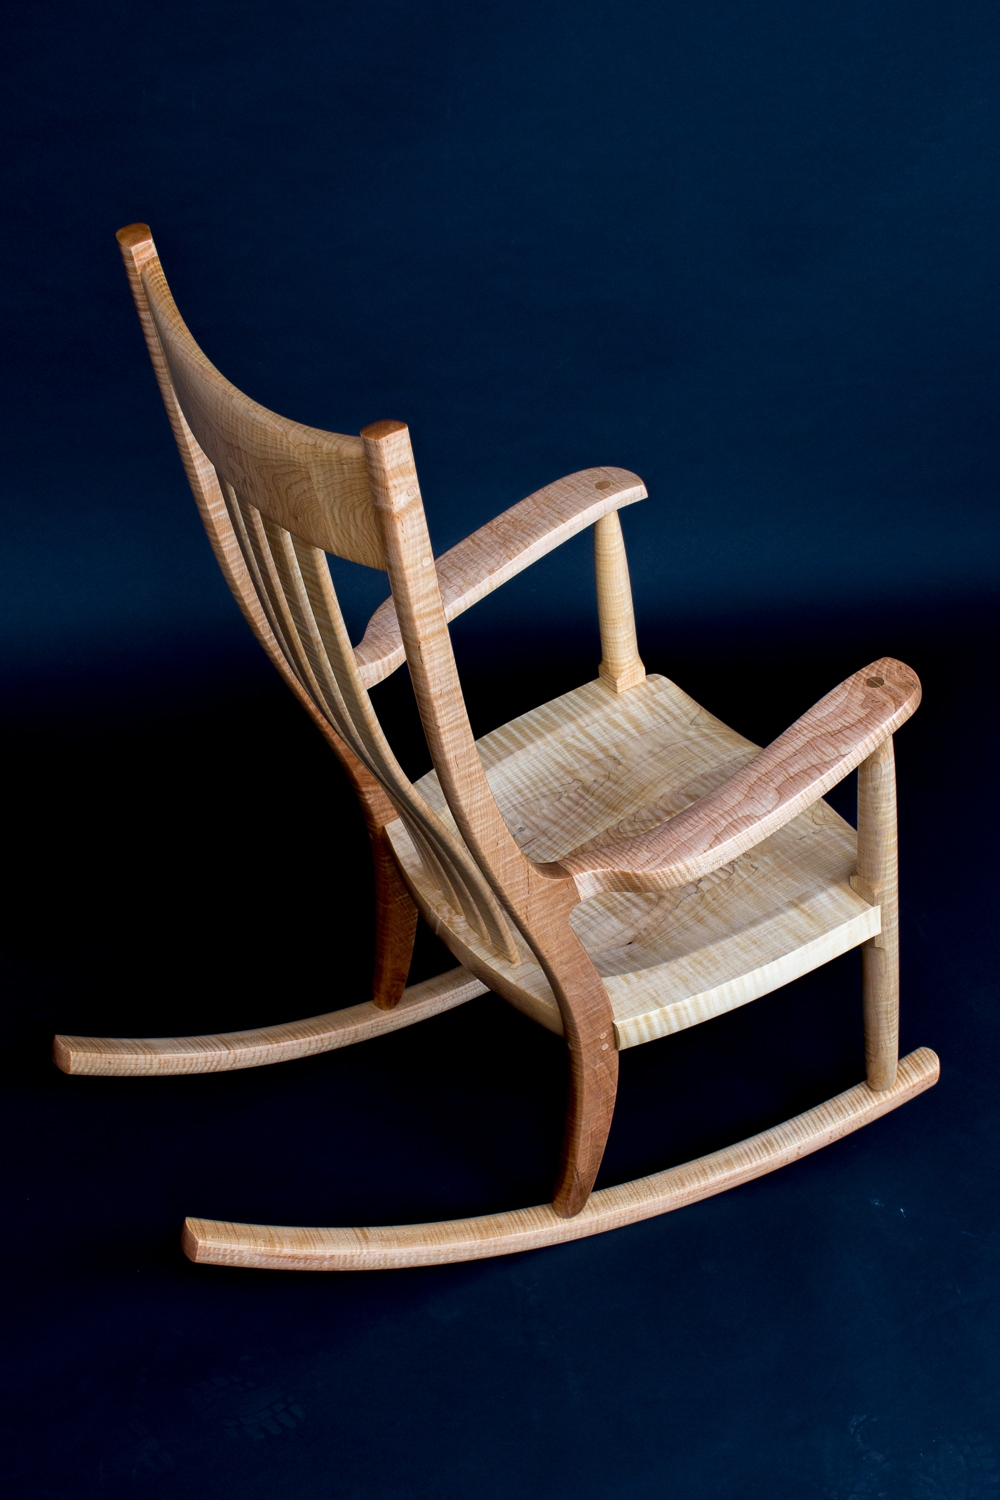 Superb Special Edition Rocking Chairs Gary Weeks And Company Machost Co Dining Chair Design Ideas Machostcouk